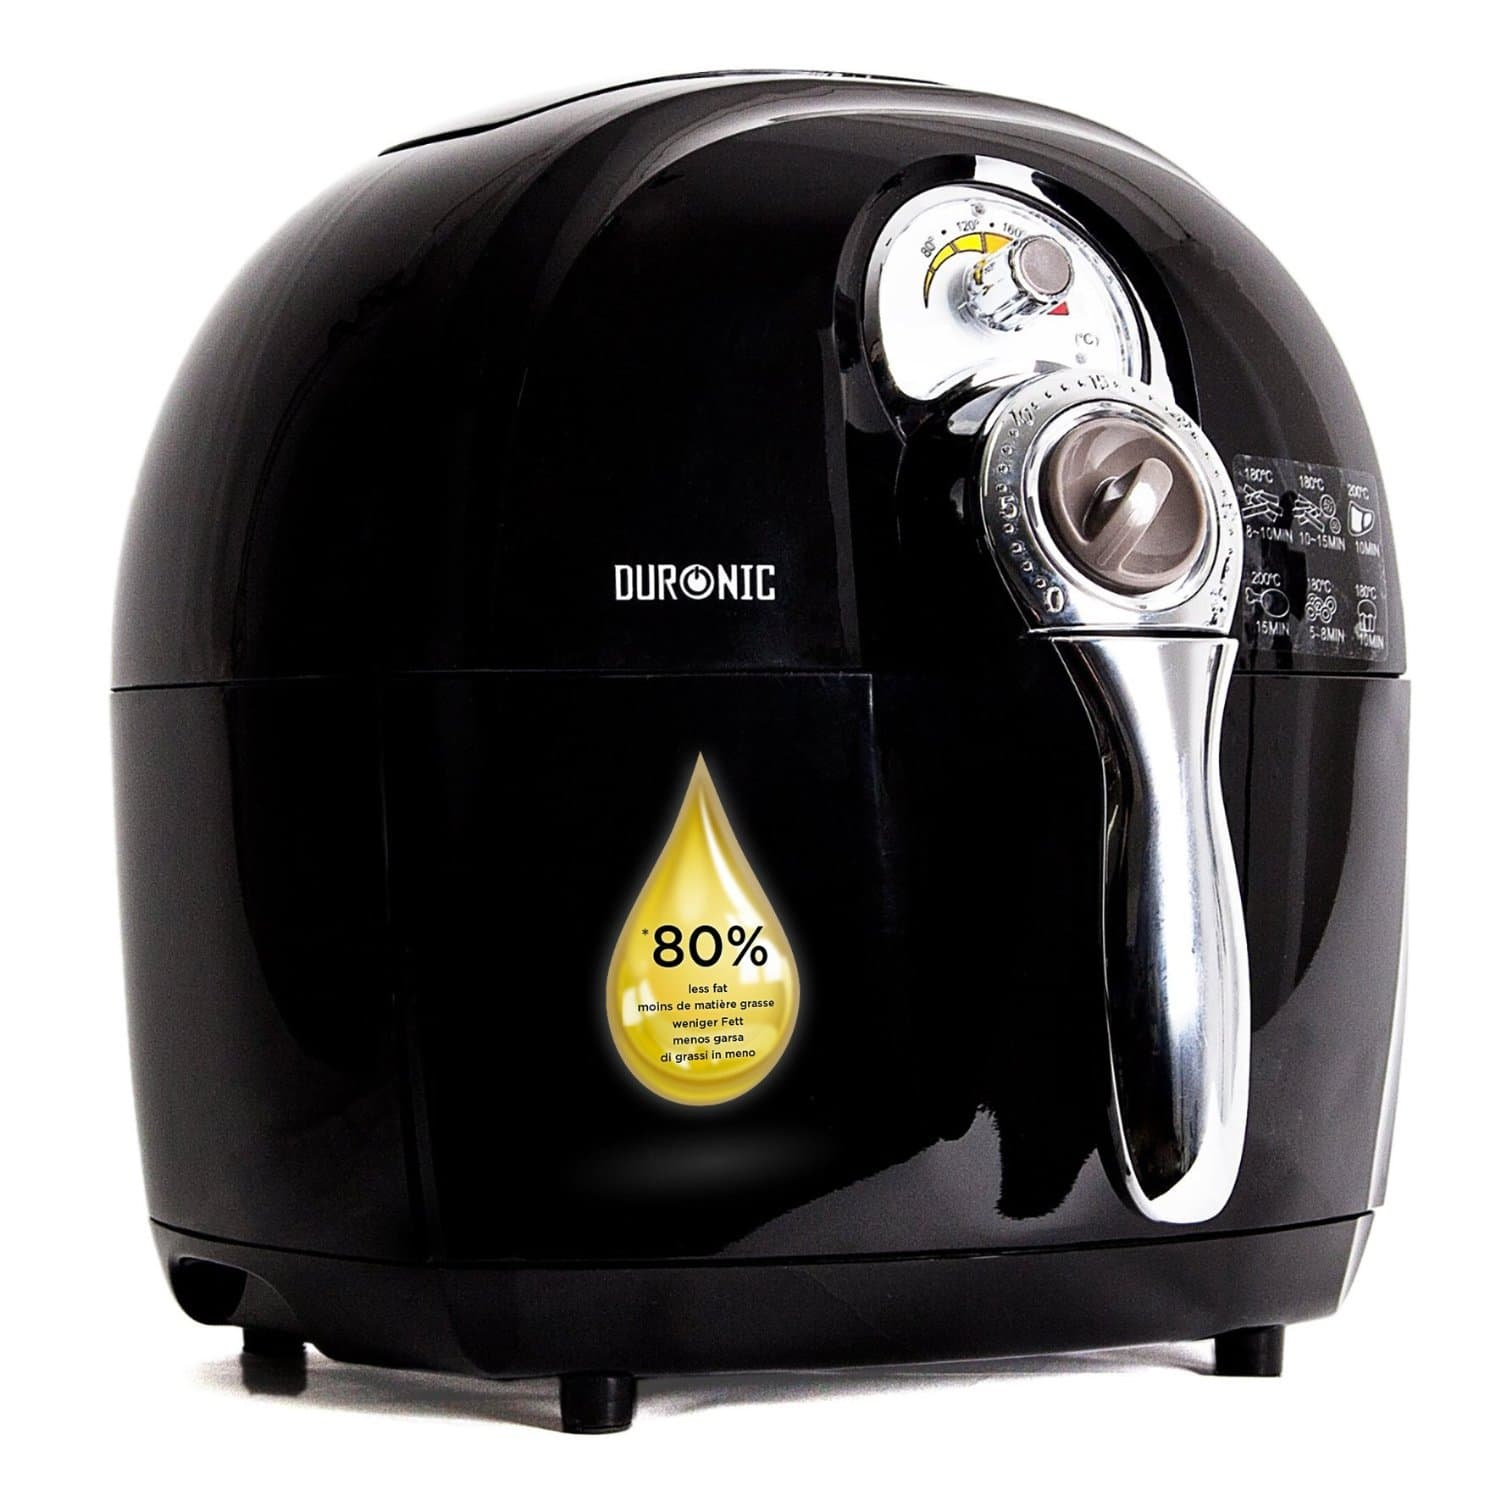 duronic af1 air fryer in Black